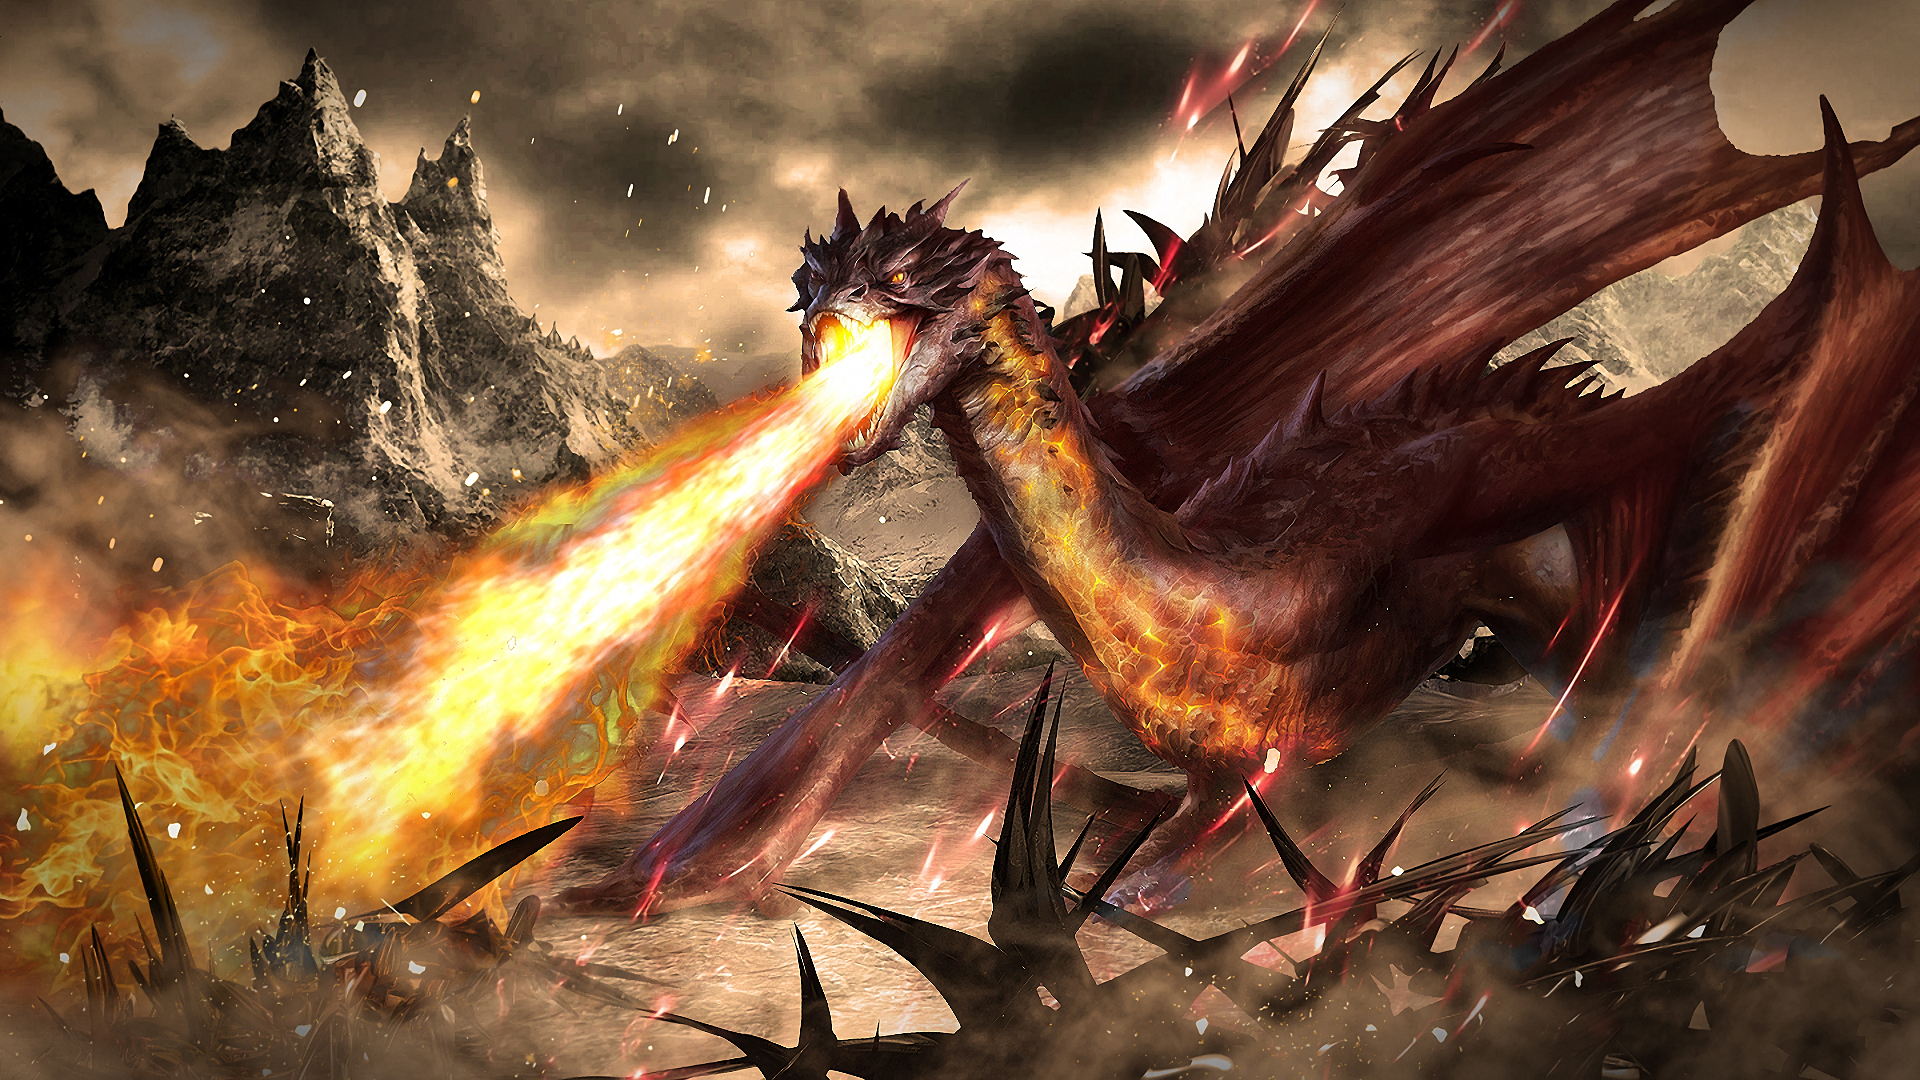 Smaug the Terrible 1920 x 1080 Wallpaper by skinny3829